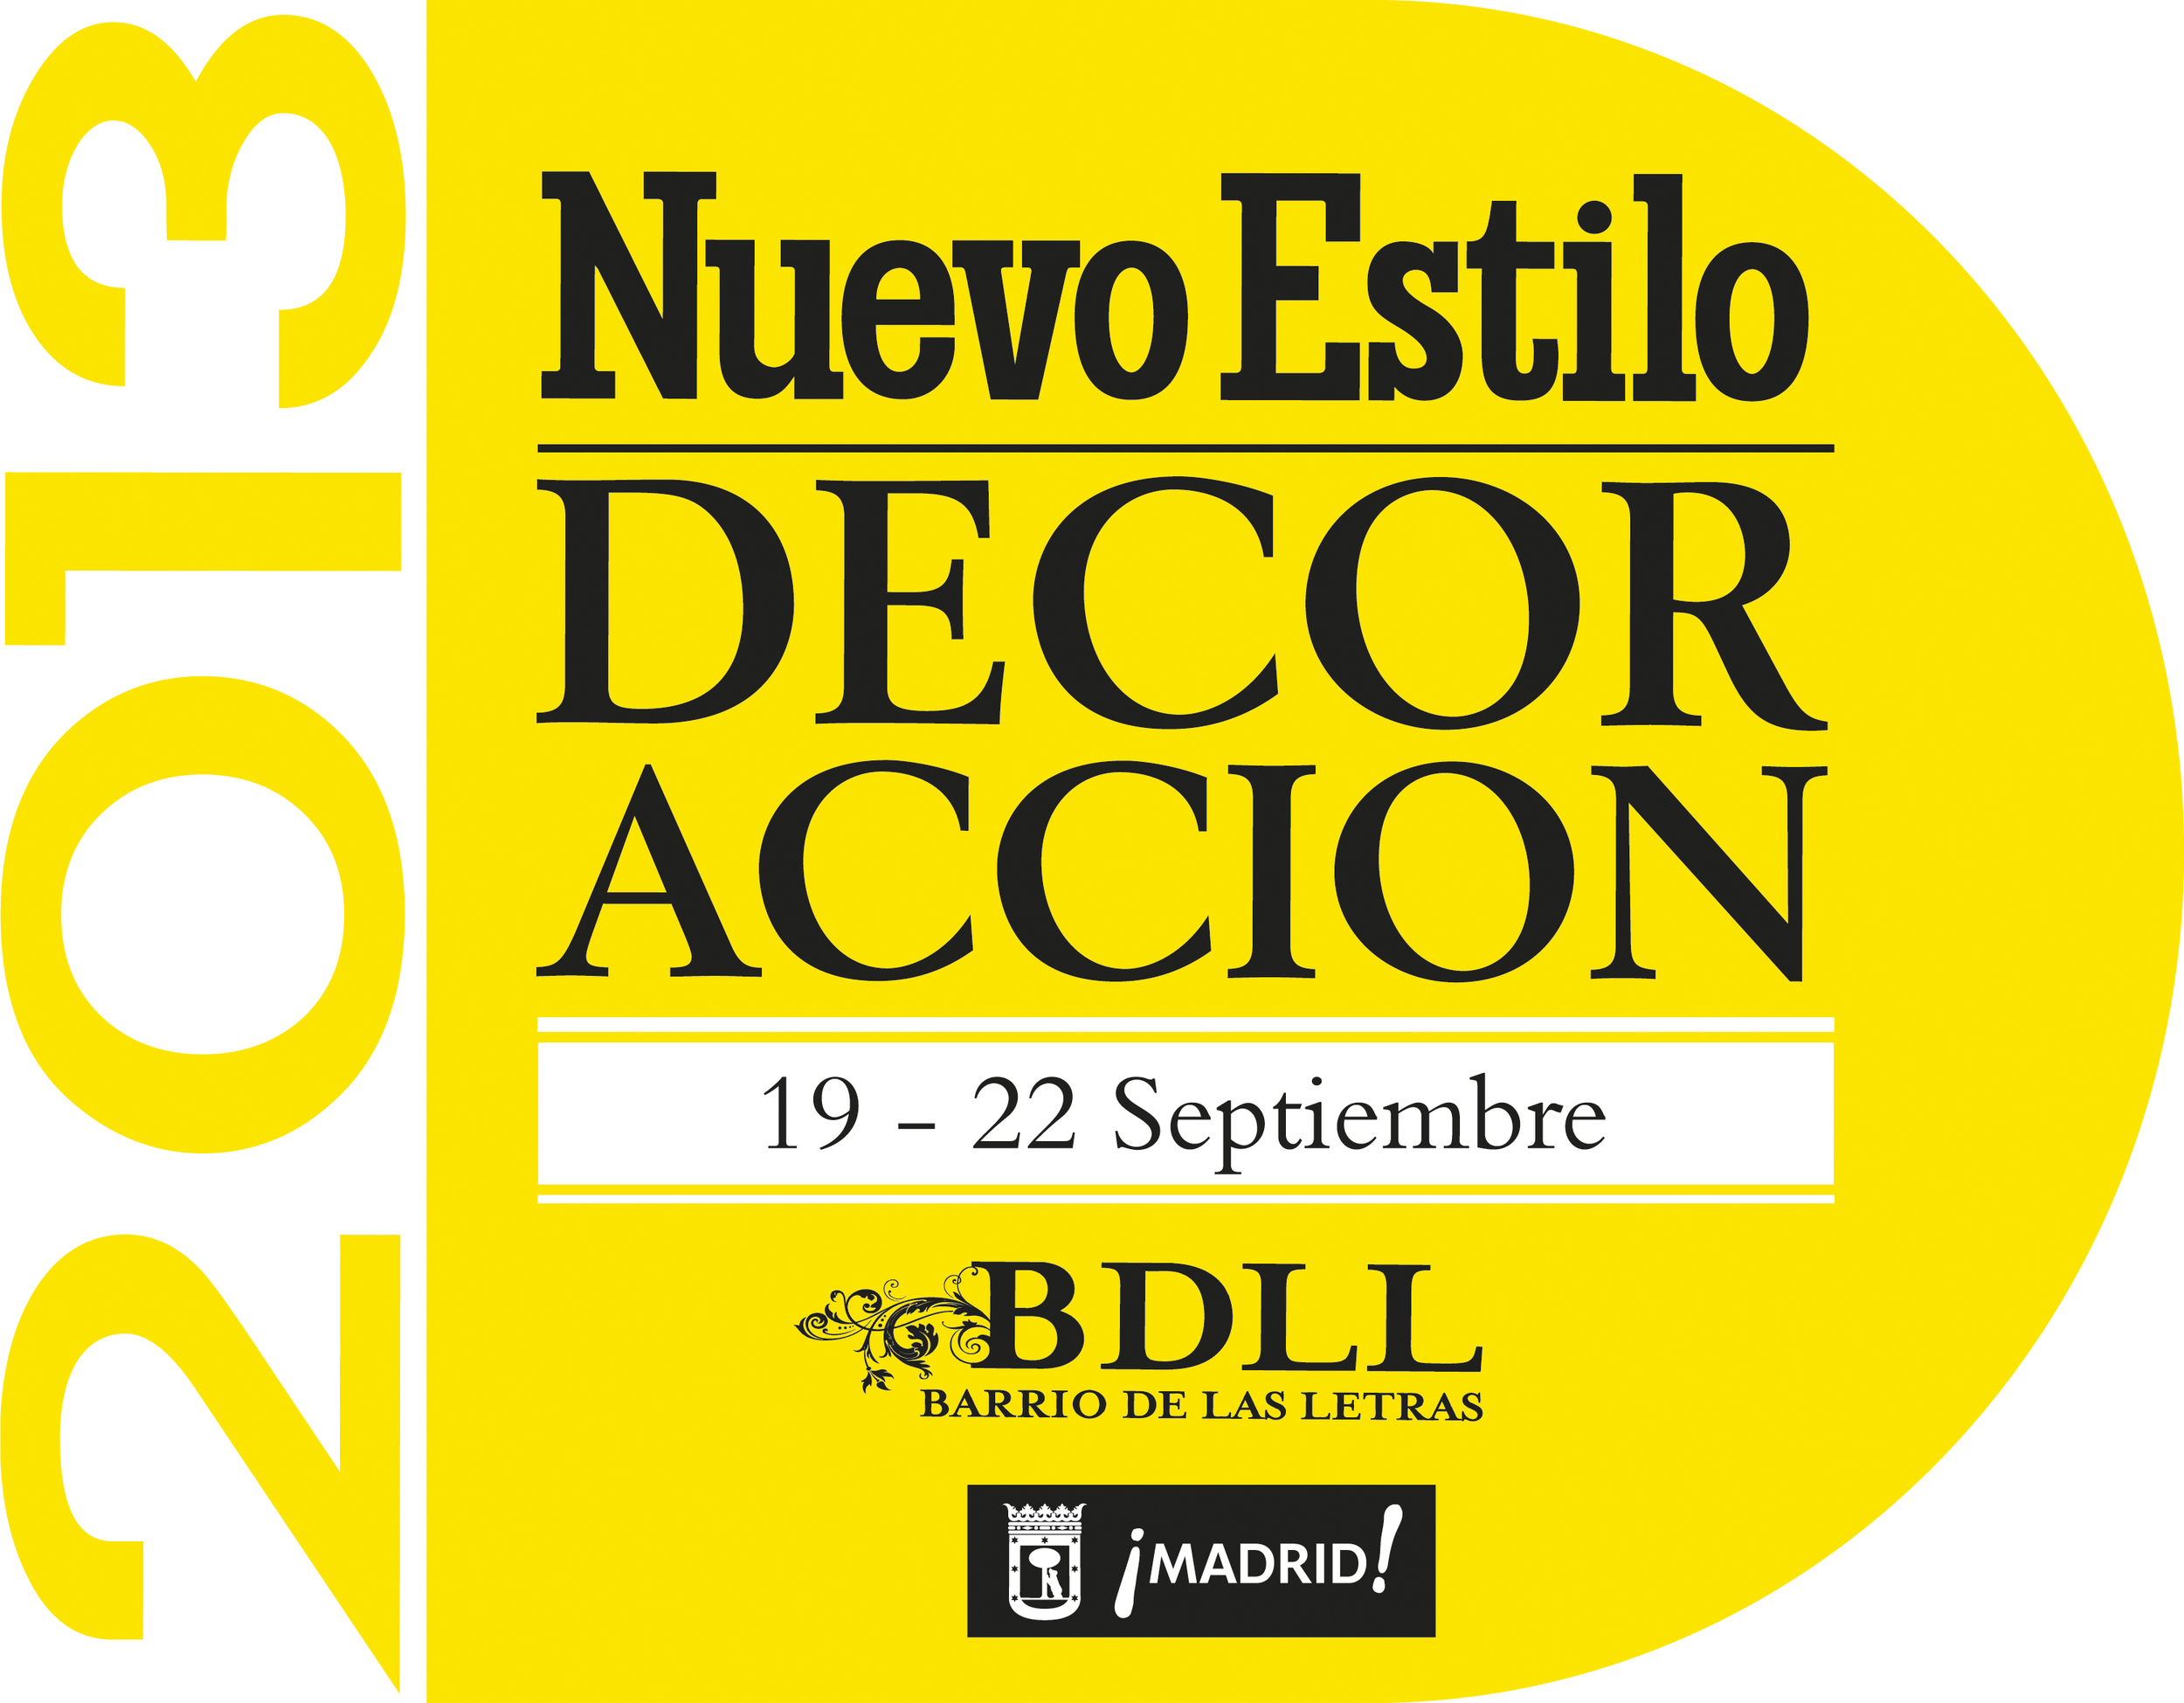 logos_decoraccion2013 ok ama (alta resolucion).jpg